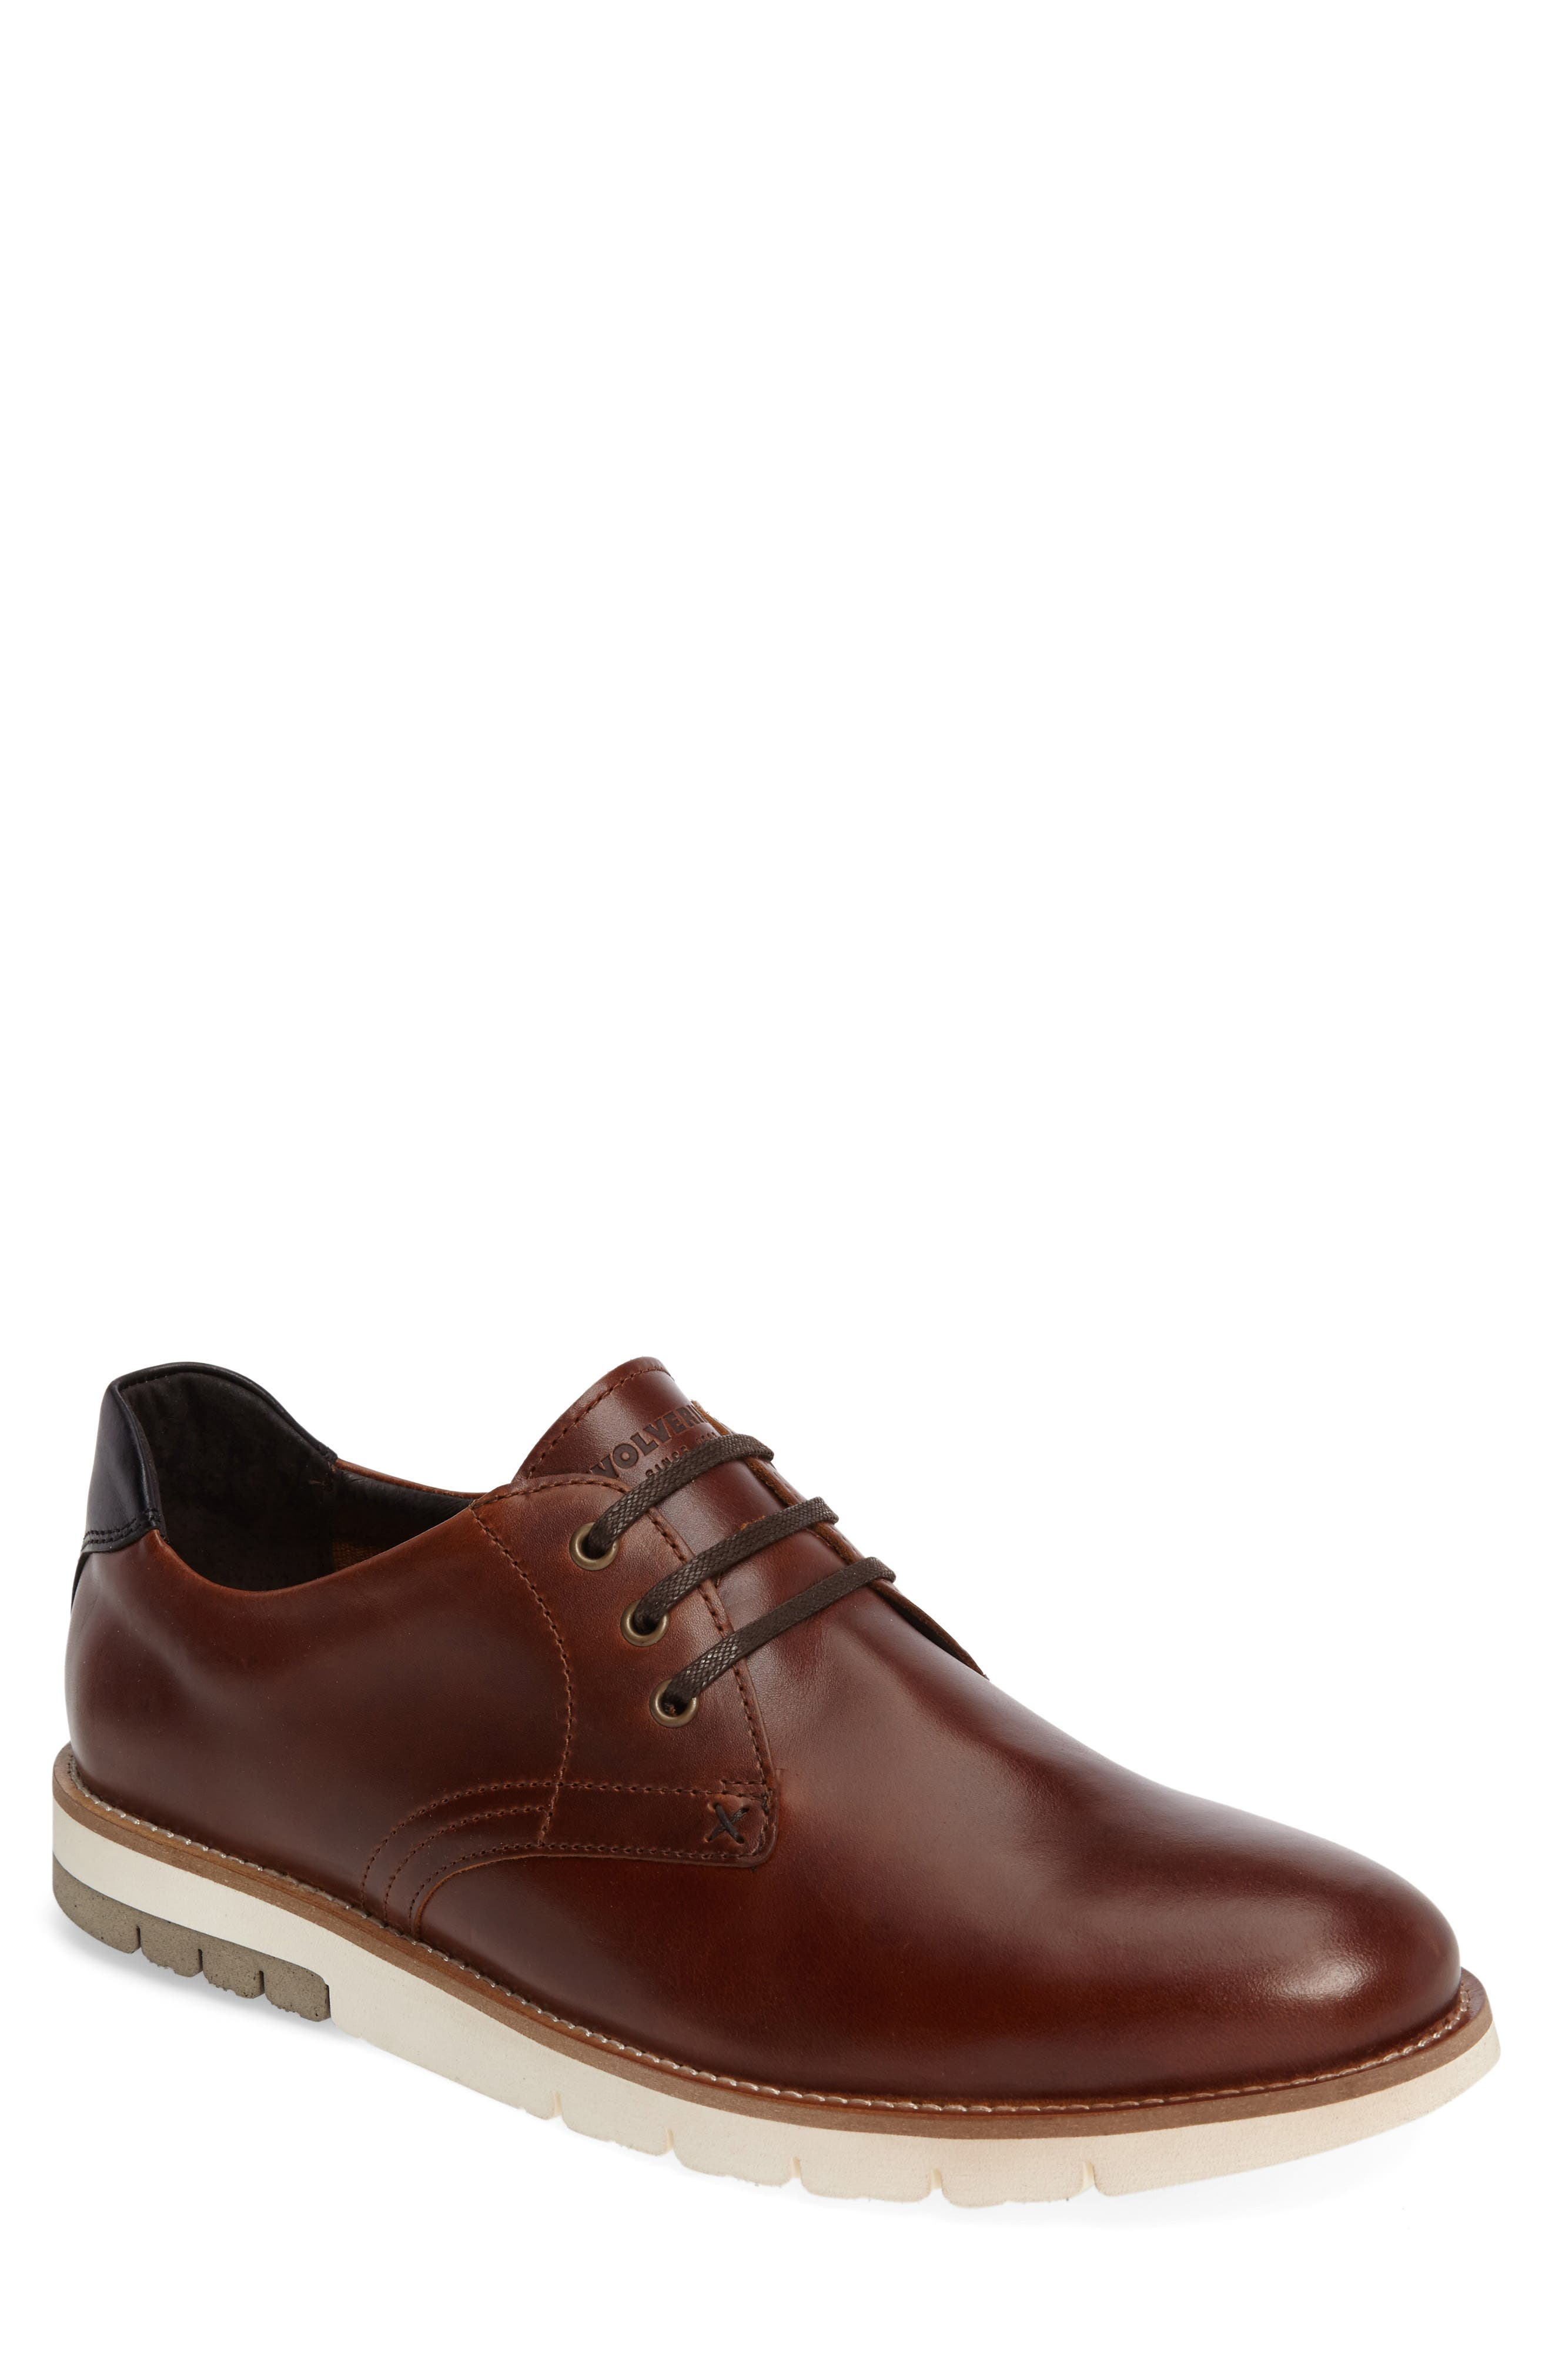 Main Image - Wolverine Reuben Plain Toe Derby (Men)